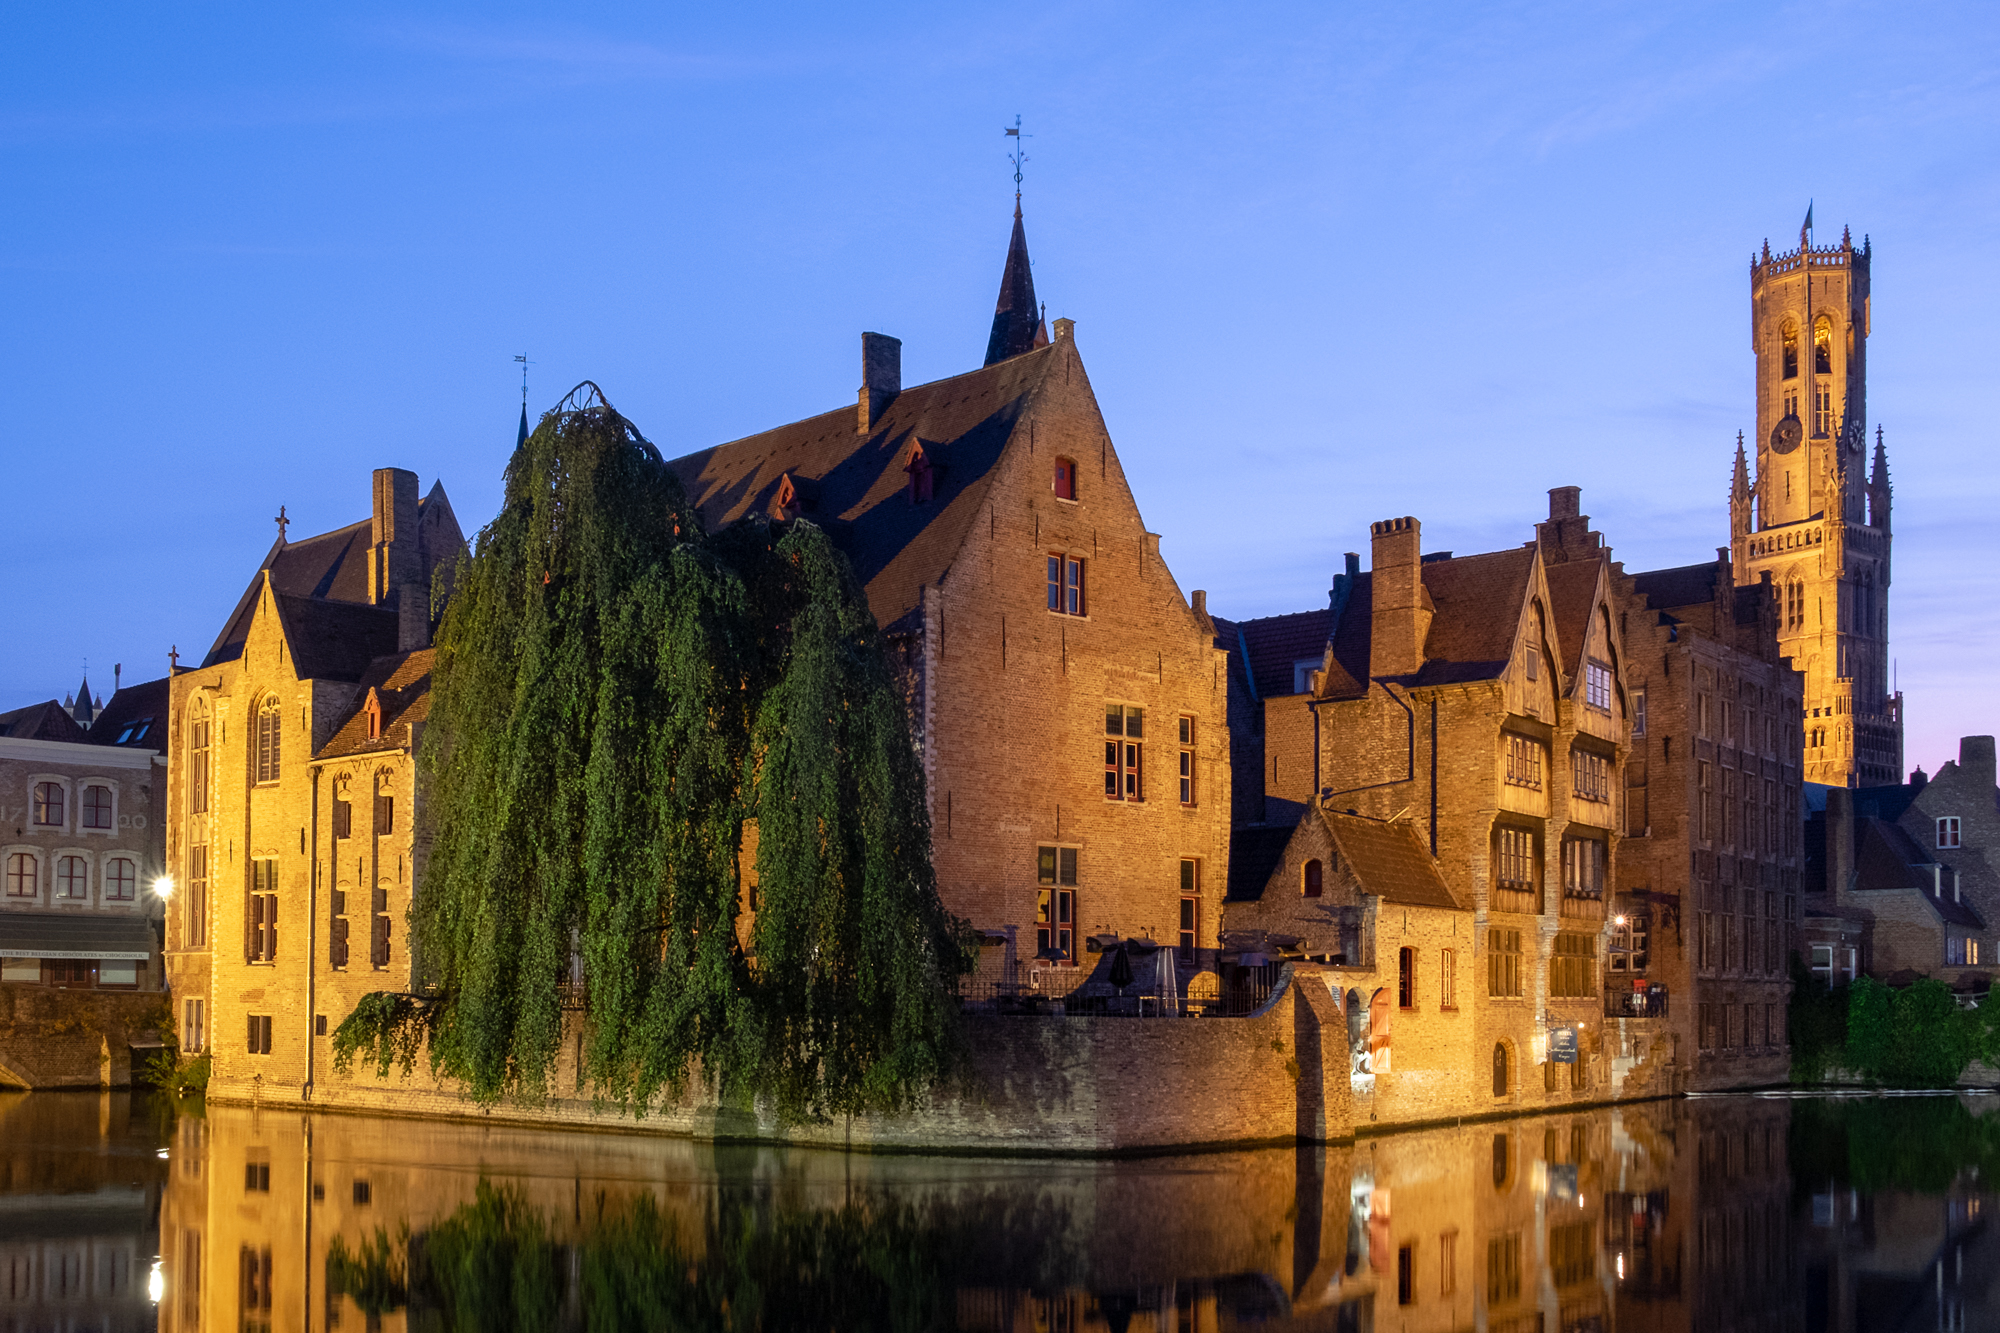 A photo of the Relais Bourgondisch Cruyce at Blue Hour in Bruges, Belgium taken by Trevor Sherwin